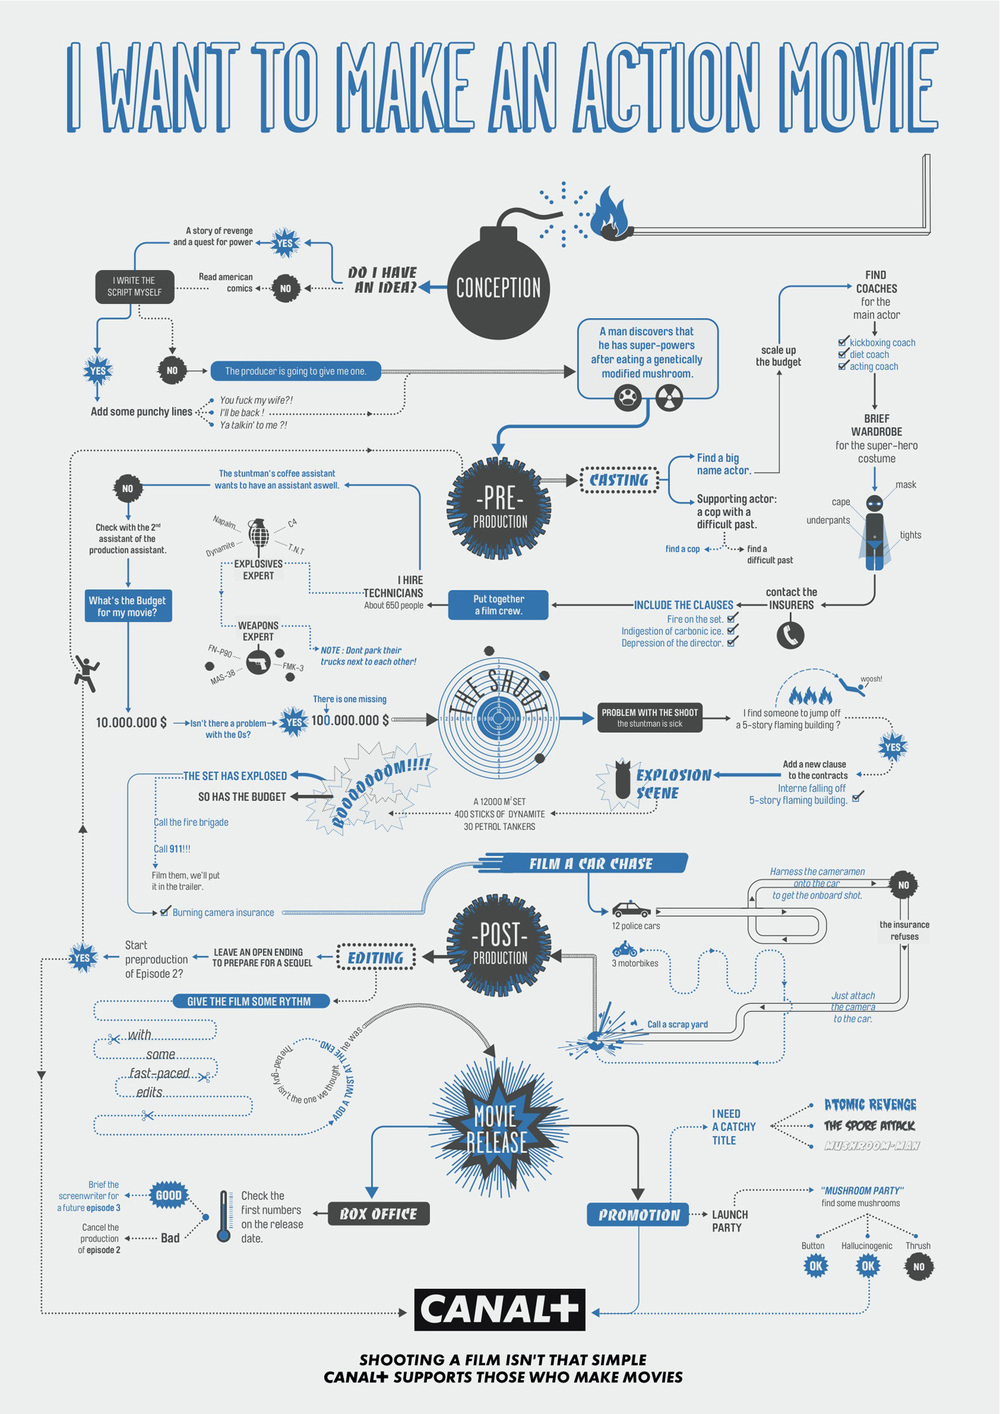 3 Flowcharts On How To Make An Animated, Action And Horror Movie